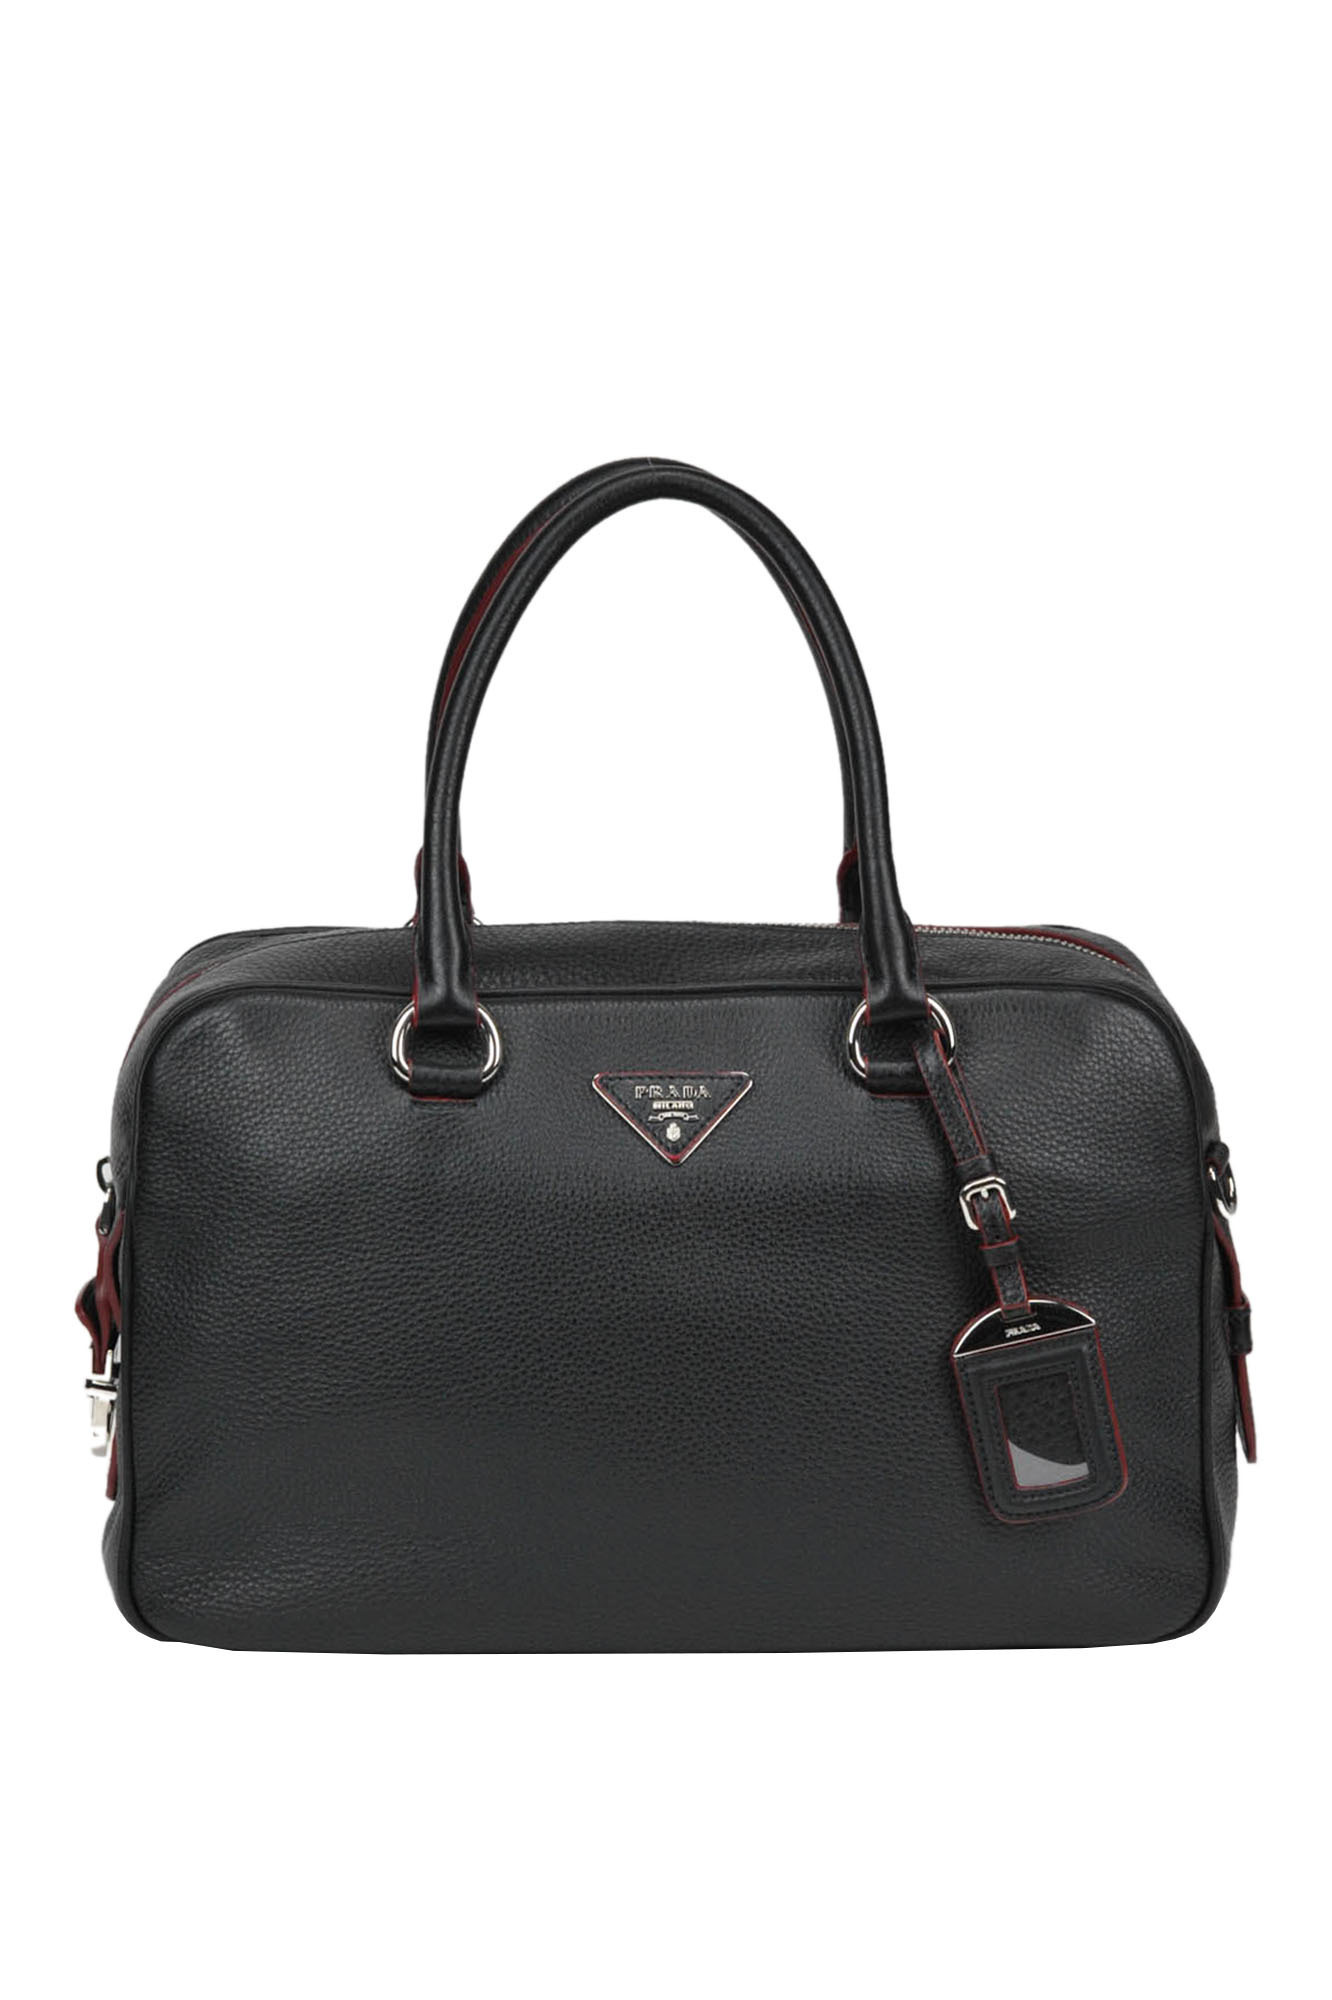 9e2d6b8d31ca Prada Leather Handbags Sale | Stanford Center for Opportunity Policy ...